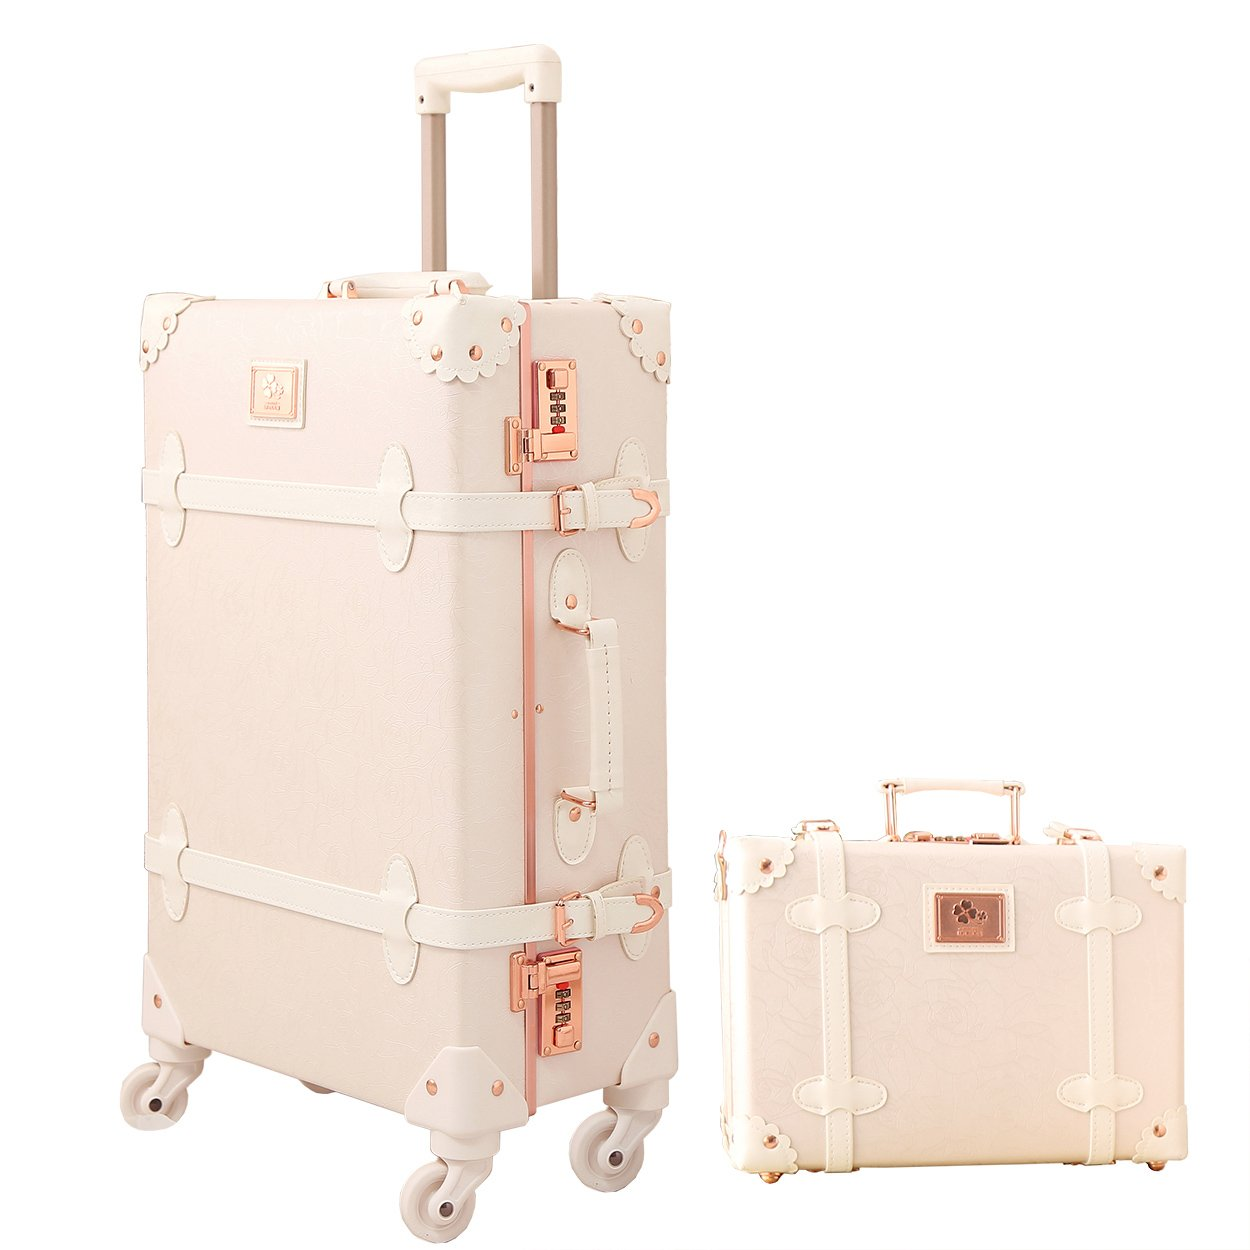 Vintage Luggage Trolley Suitcases Lightweight